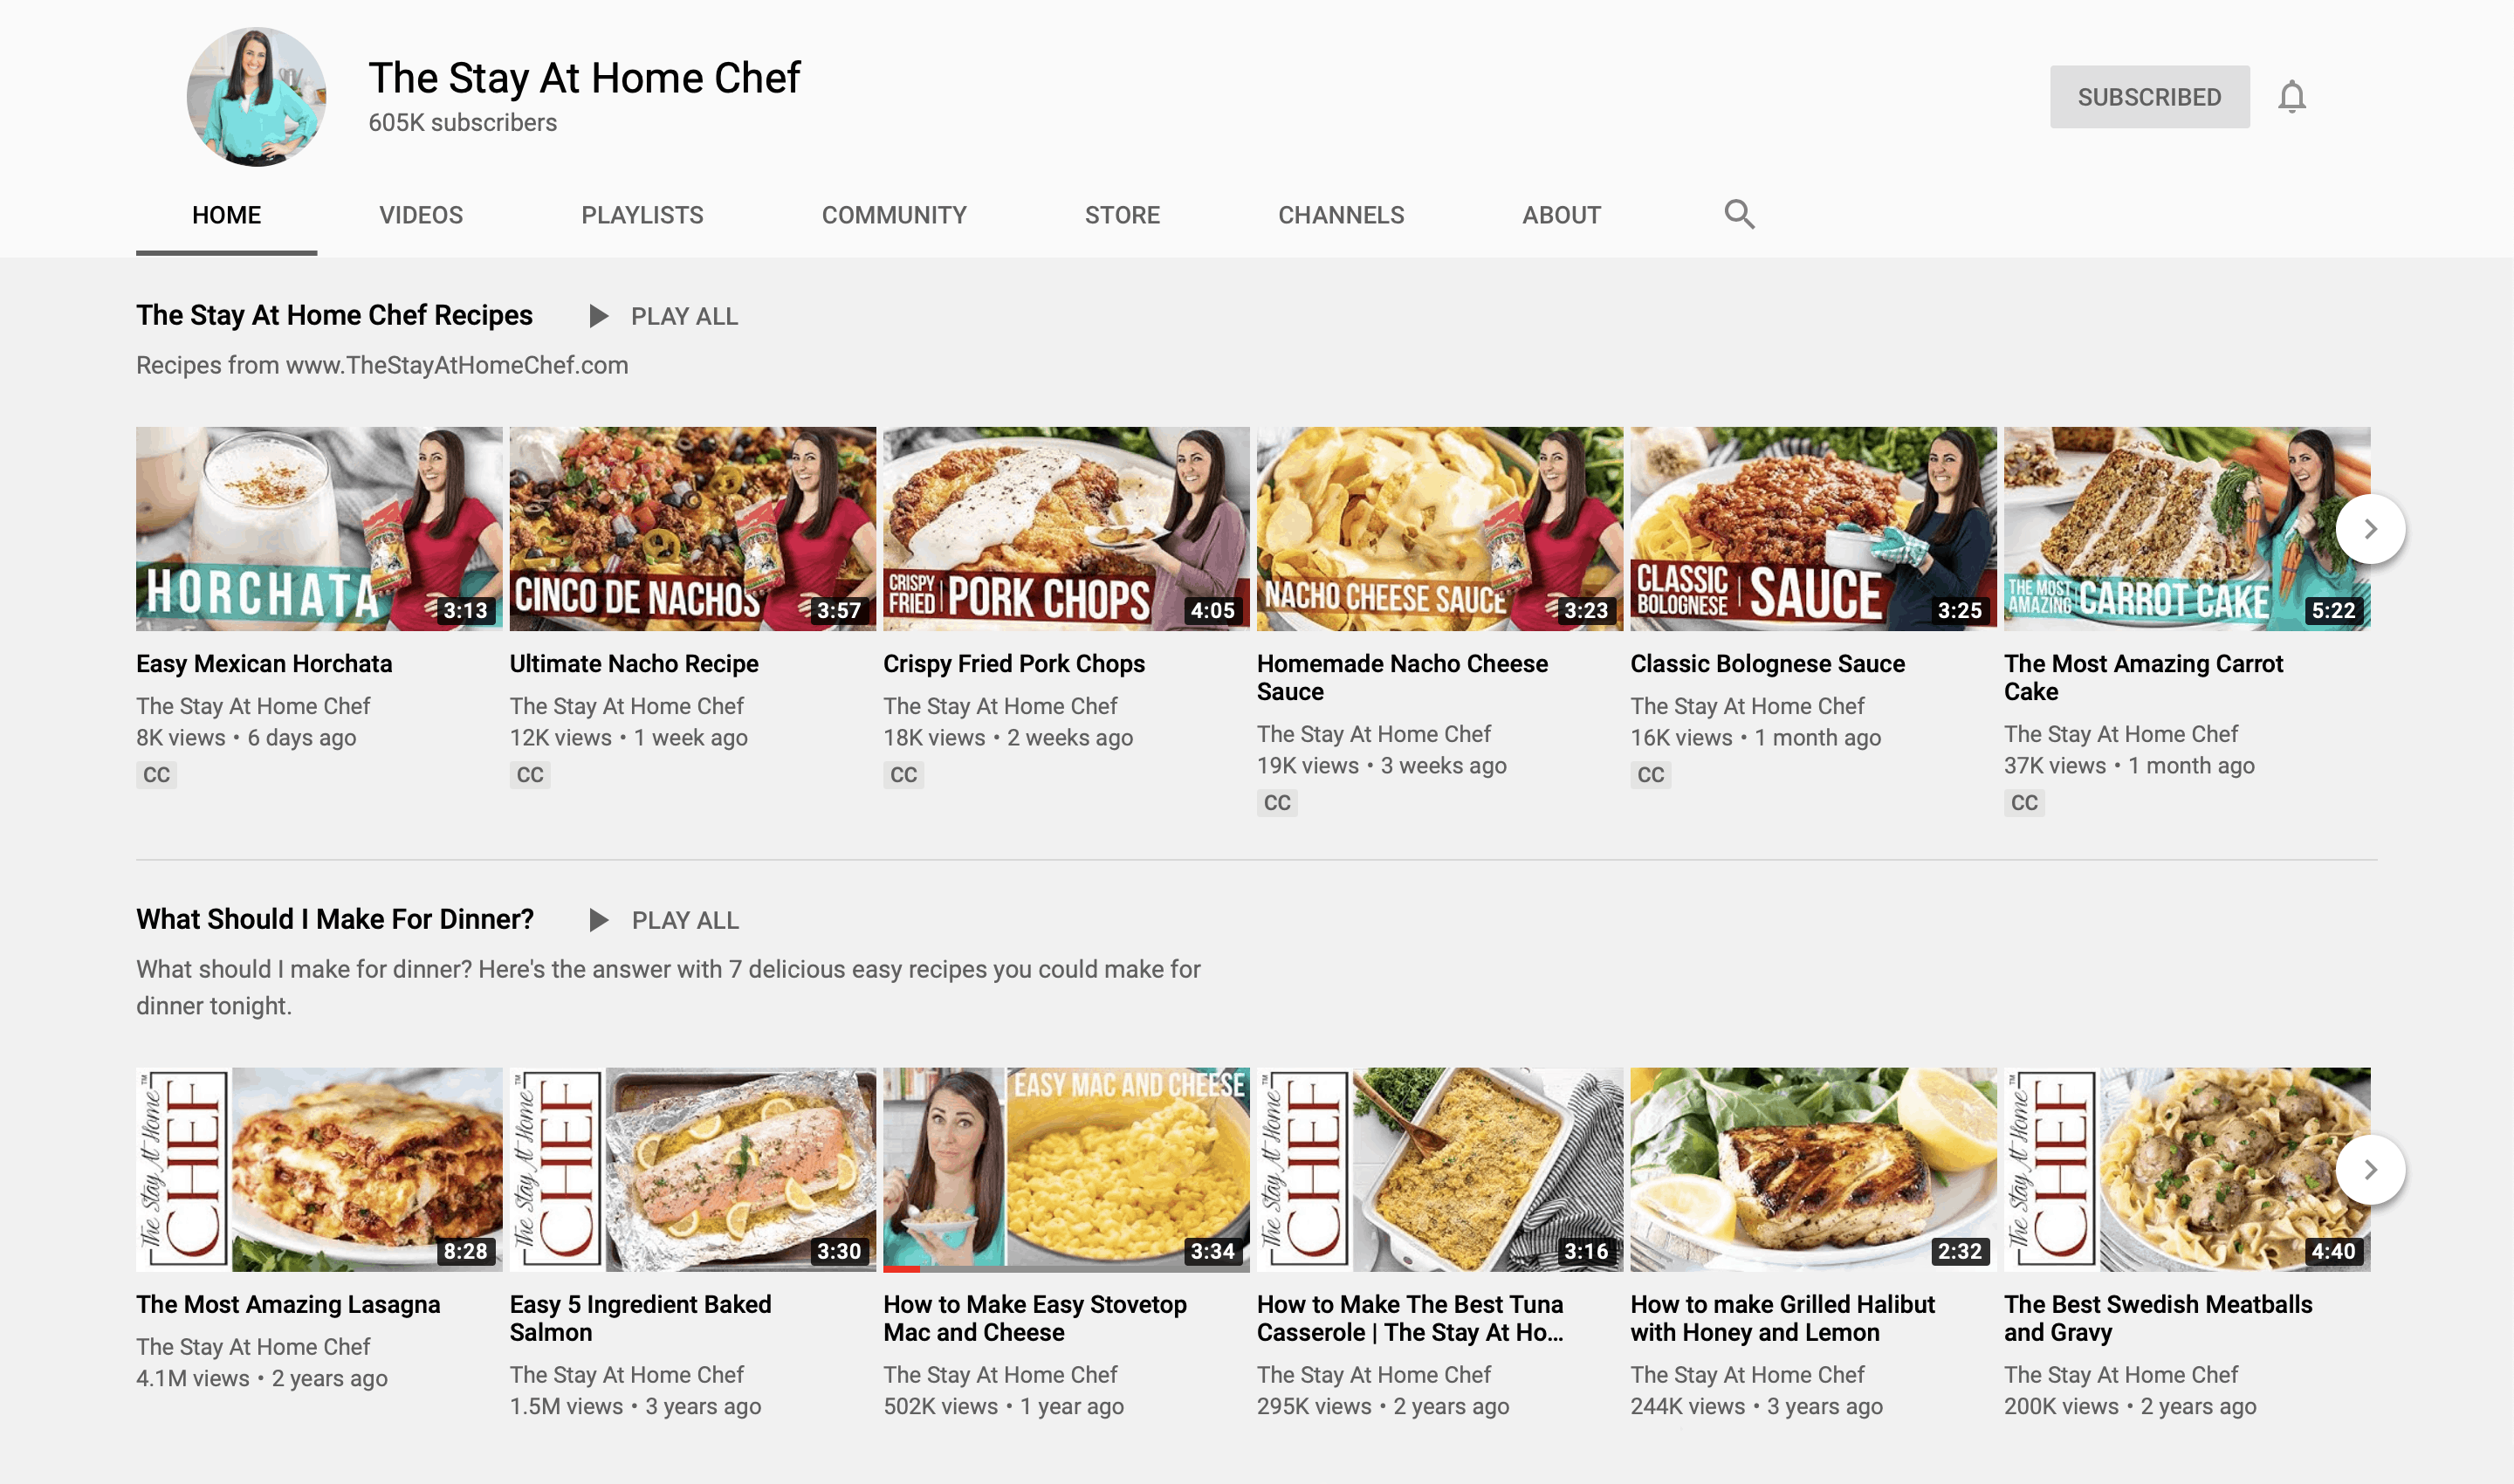 Section of YouTube channel for The Stay At Home Chef.